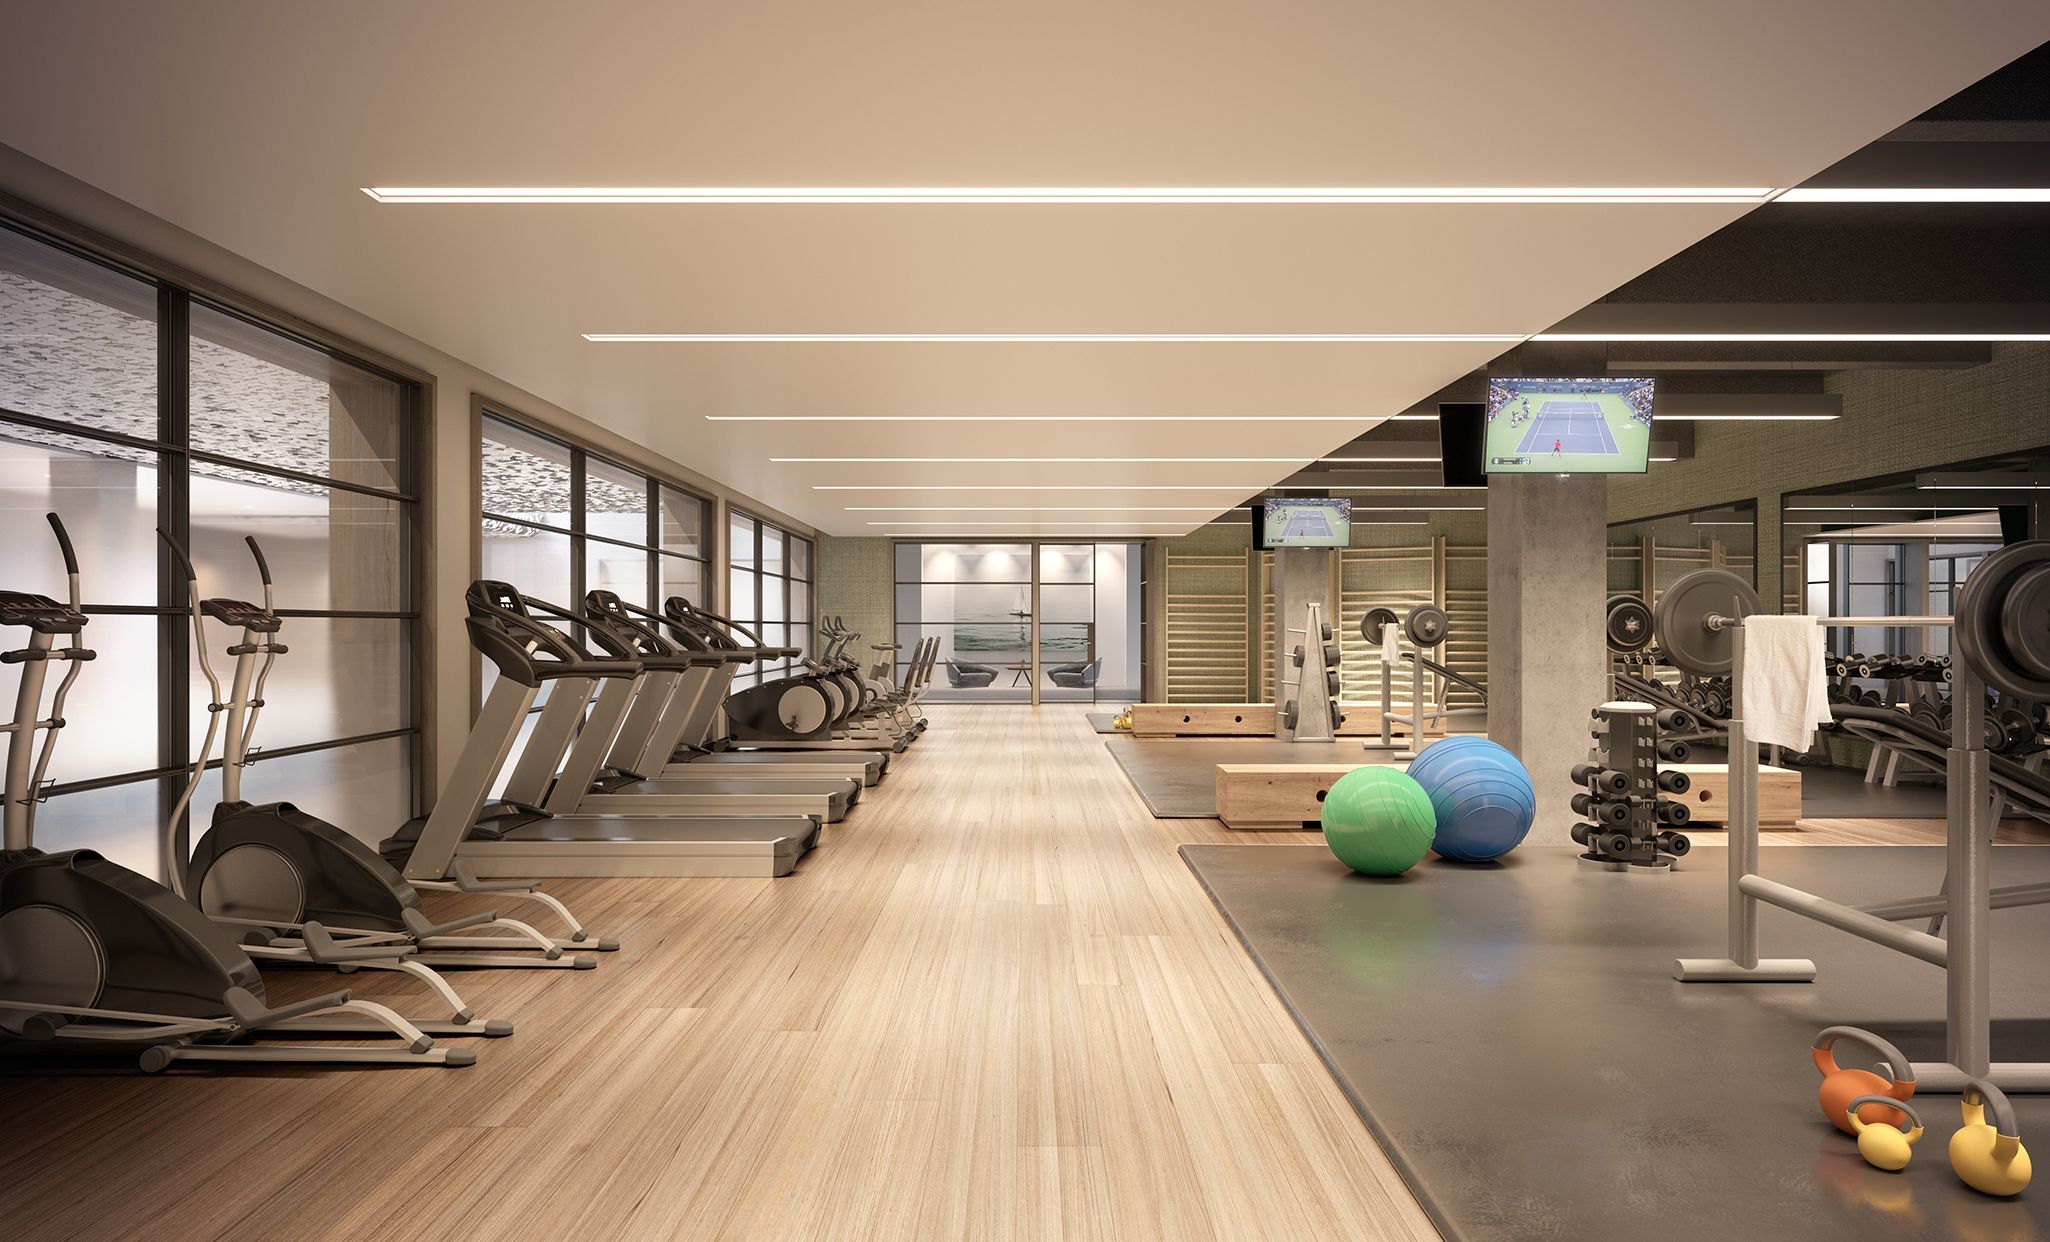 20 Amazing Home Gym Room Ideas For Your Family Trenduhome Gym Room At Home Gym Room Gym Design Interior